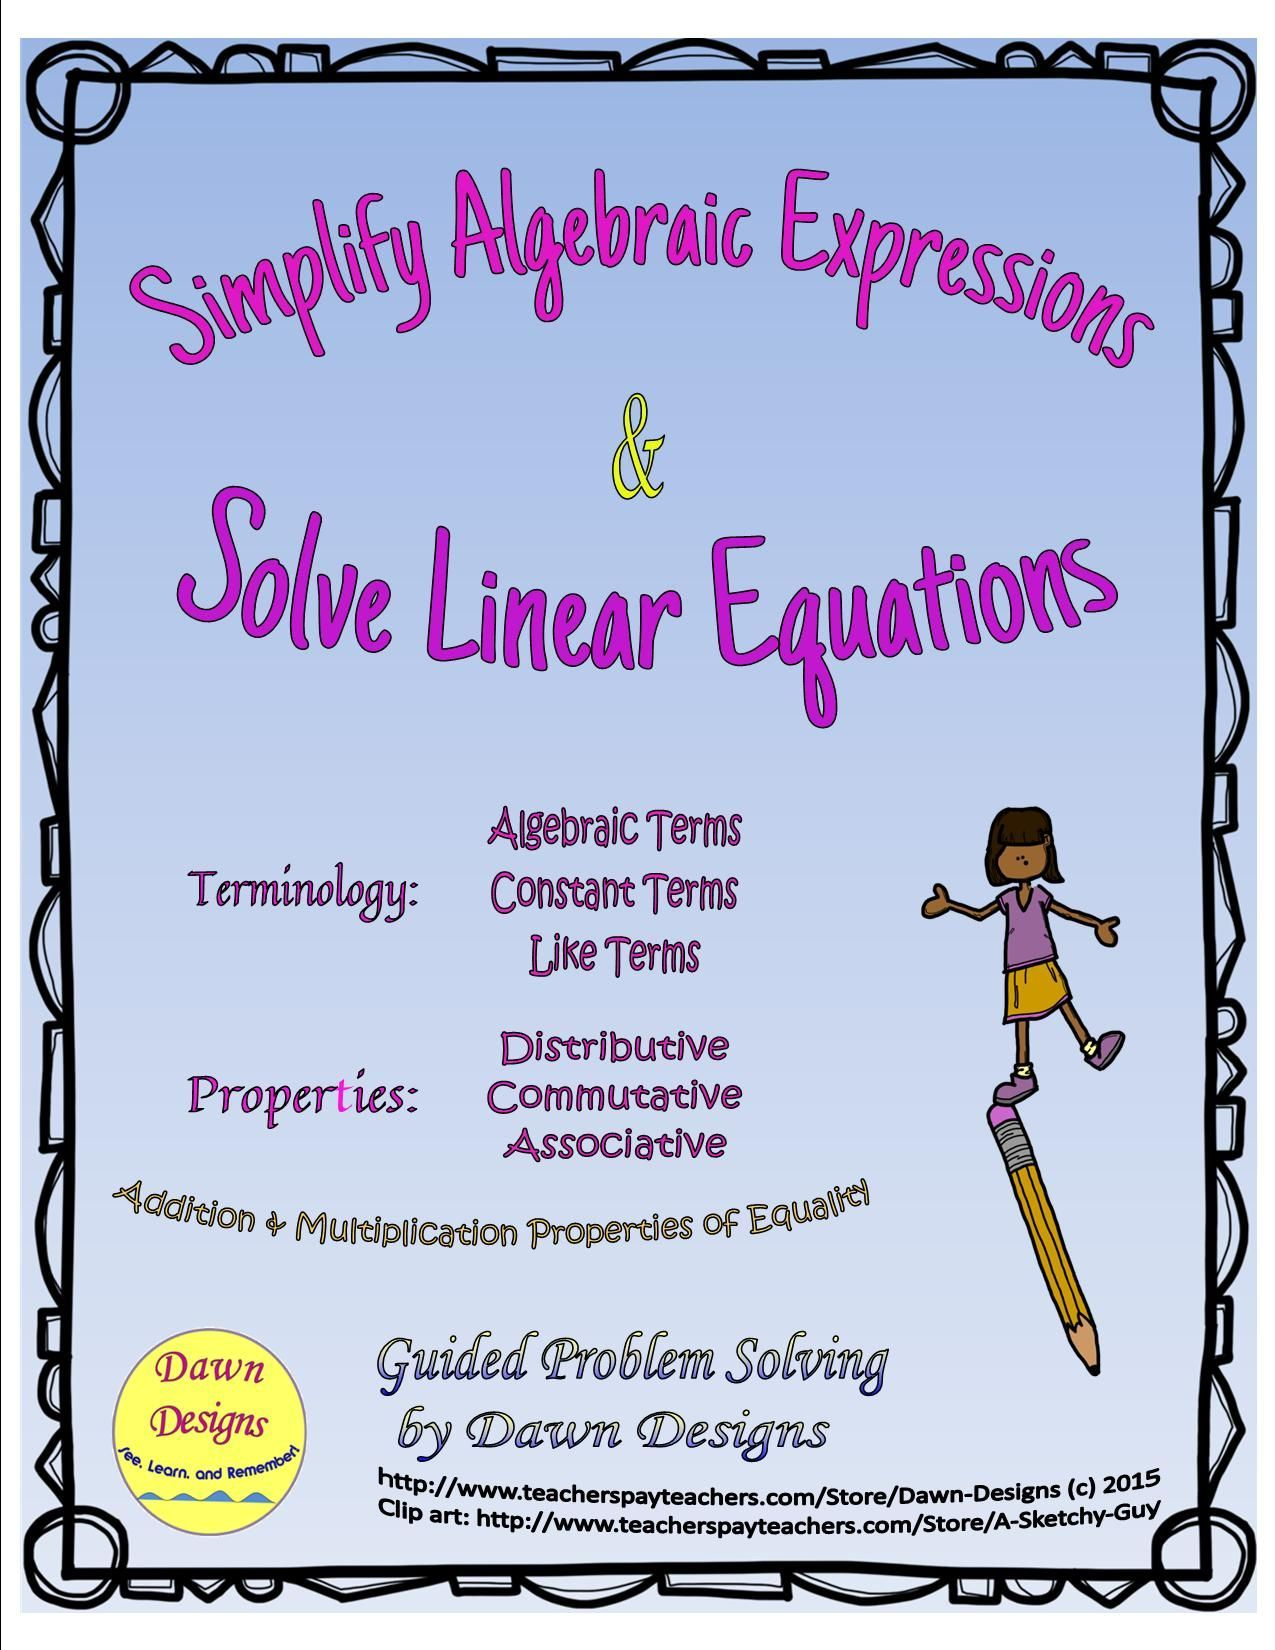 simplify algebraic expressions, solve linear equations; addition and